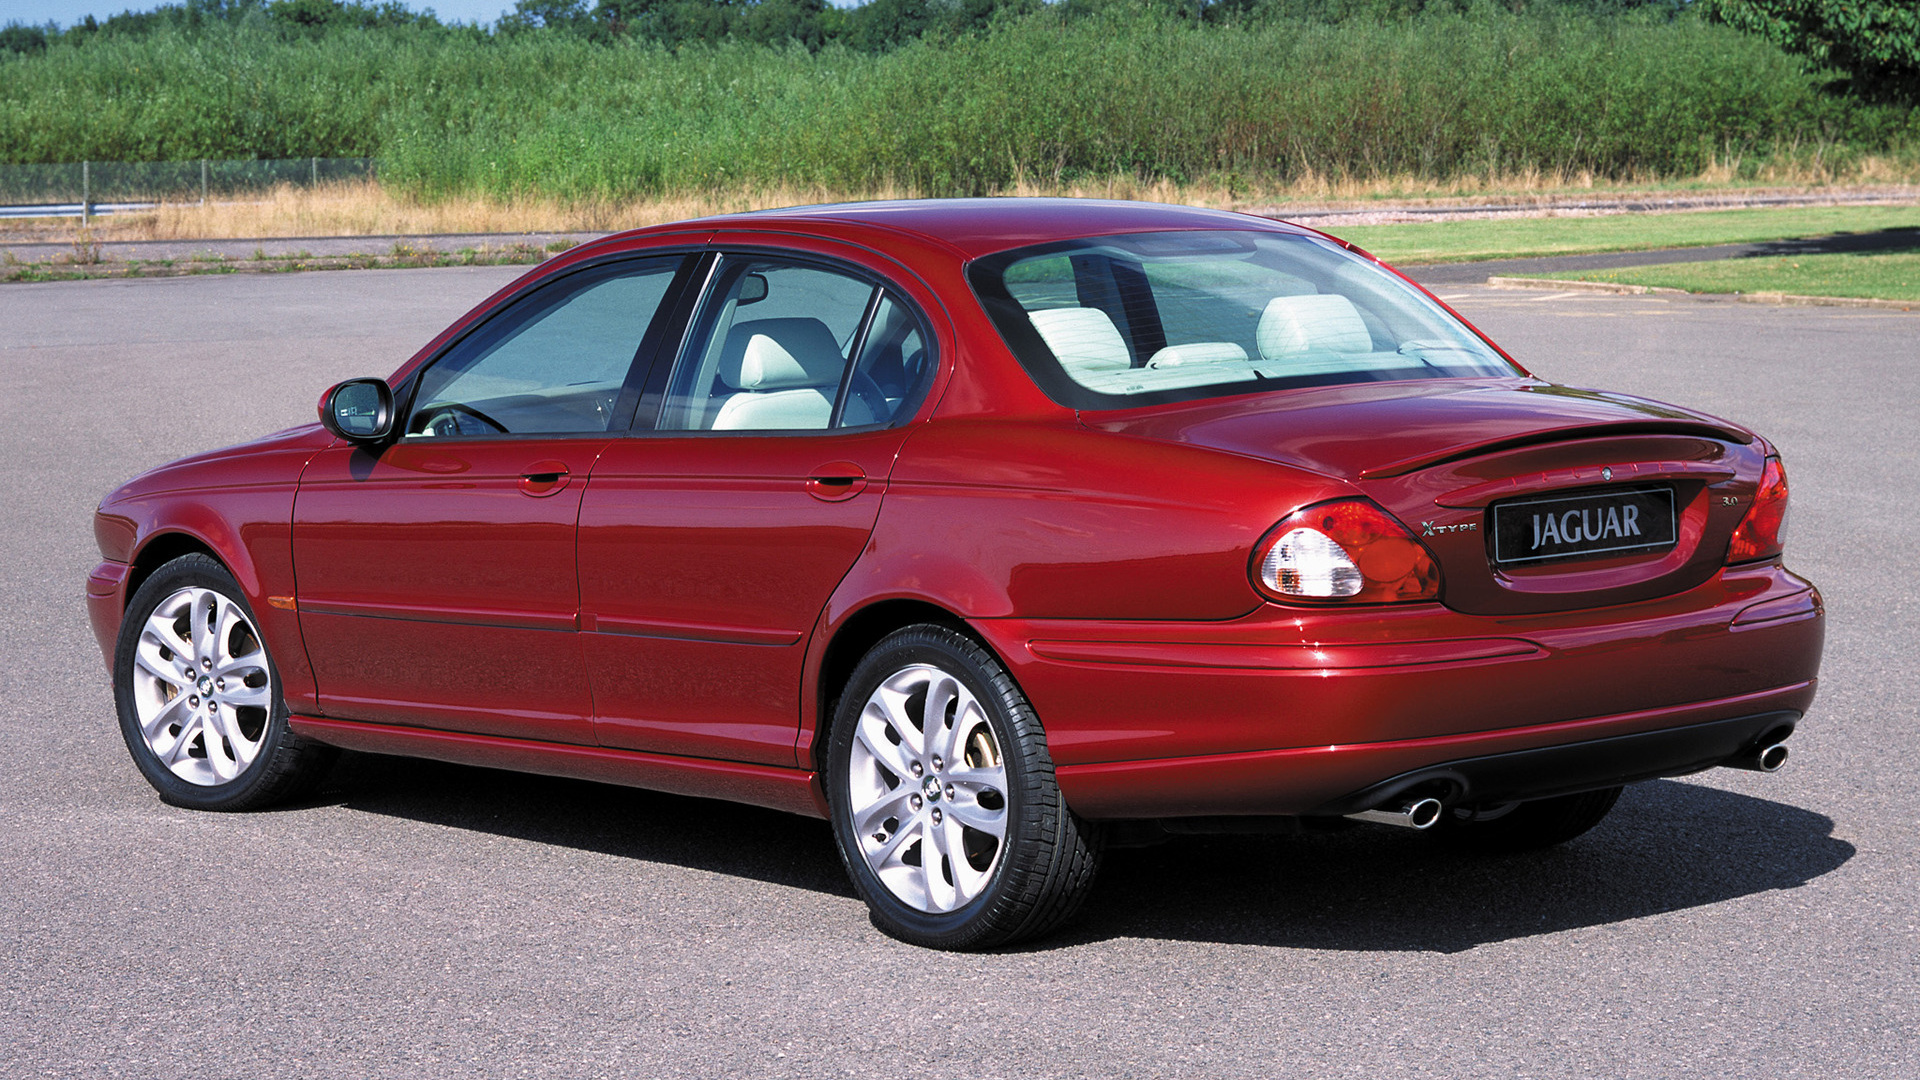 Jaguar X-type  2002  Uk Wallpapers And Hd Images